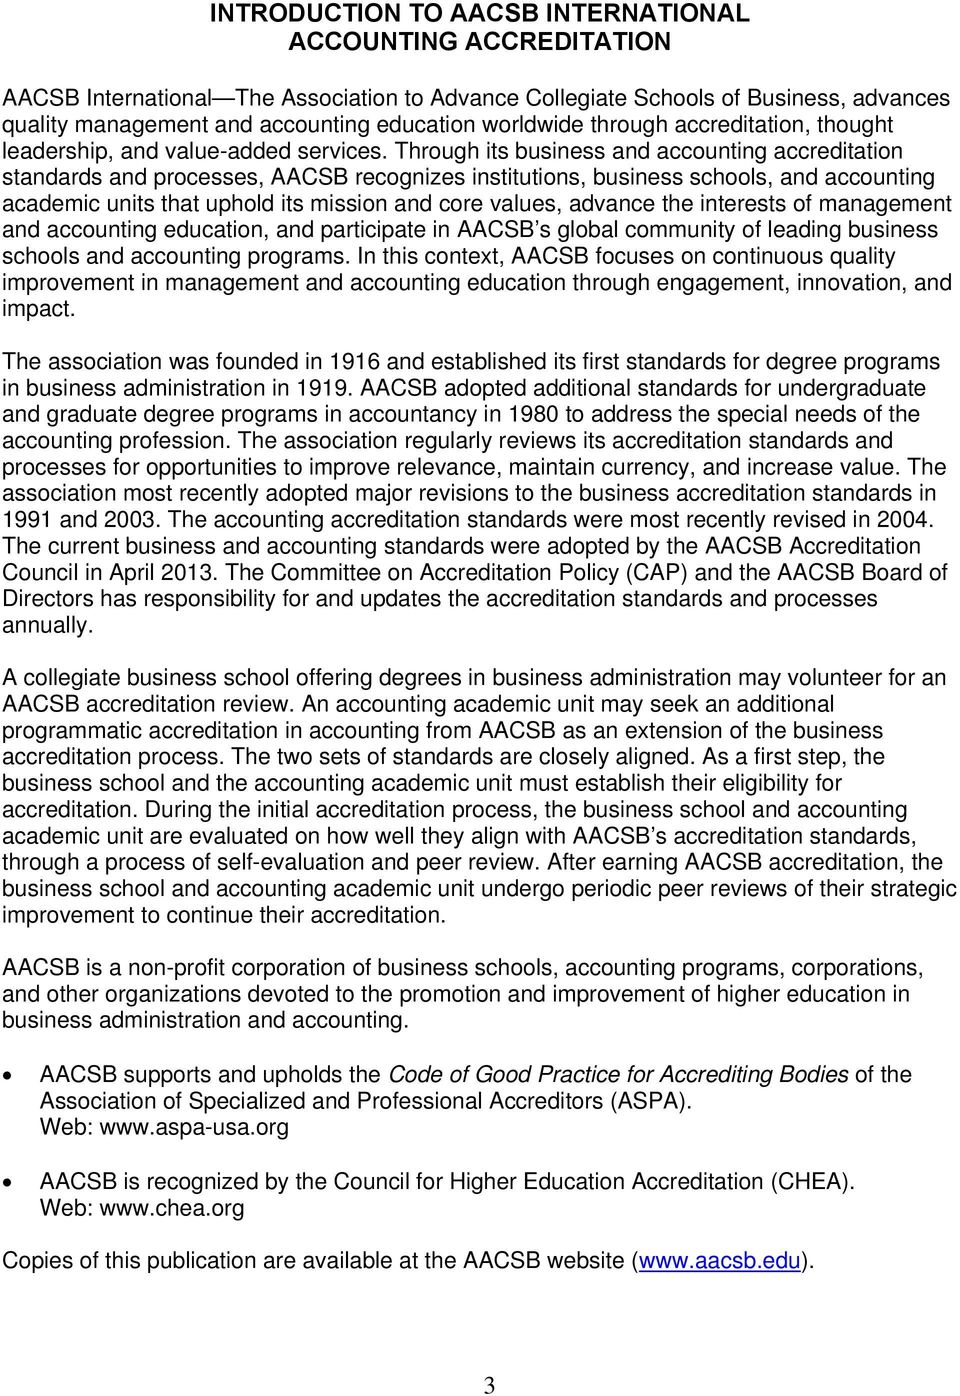 Through its business and accounting accreditation standards and processes, AACSB recognizes institutions, business schools, and accounting academic units that uphold its mission and core values,